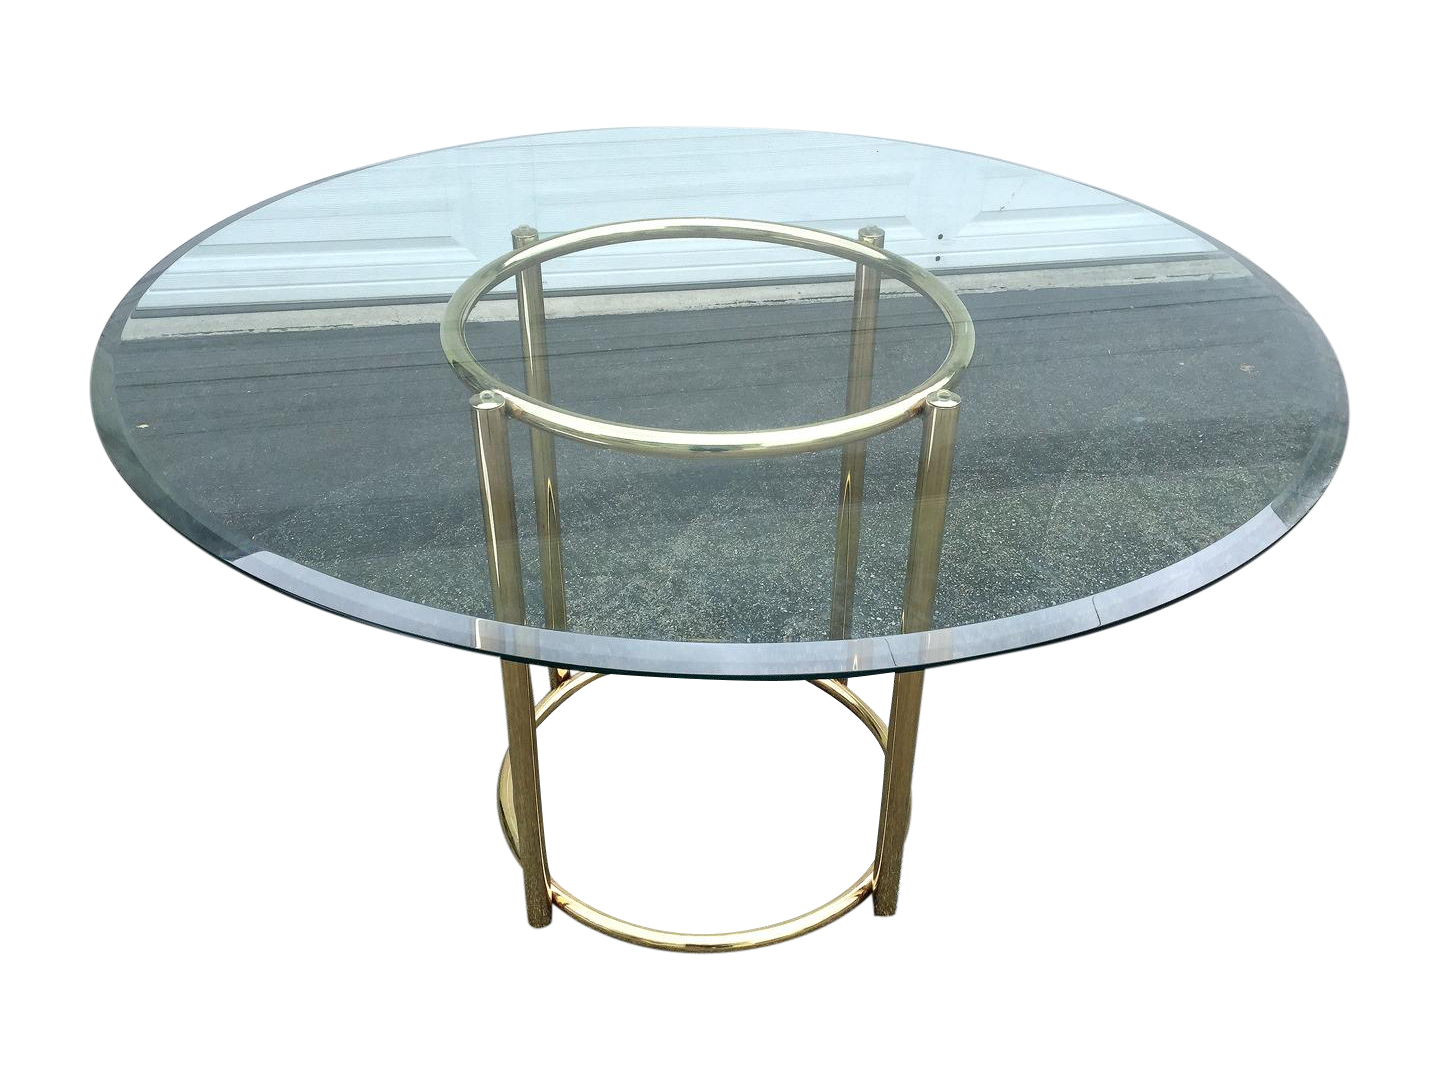 Vintage Brass Base Dining Table Chairish : fcb704f1 acea 45b1 b013 5b76ed52c934aspectfitampwidth640ampheight640 from www.chairish.com size 640 x 640 jpeg 32kB